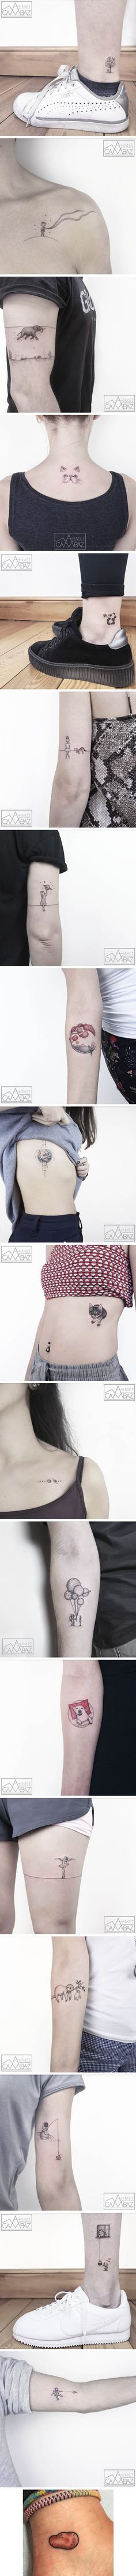 Former Cartoonist Creates Cute Animal Tattoos To Show You A Life On The Wild Side - 9GAG